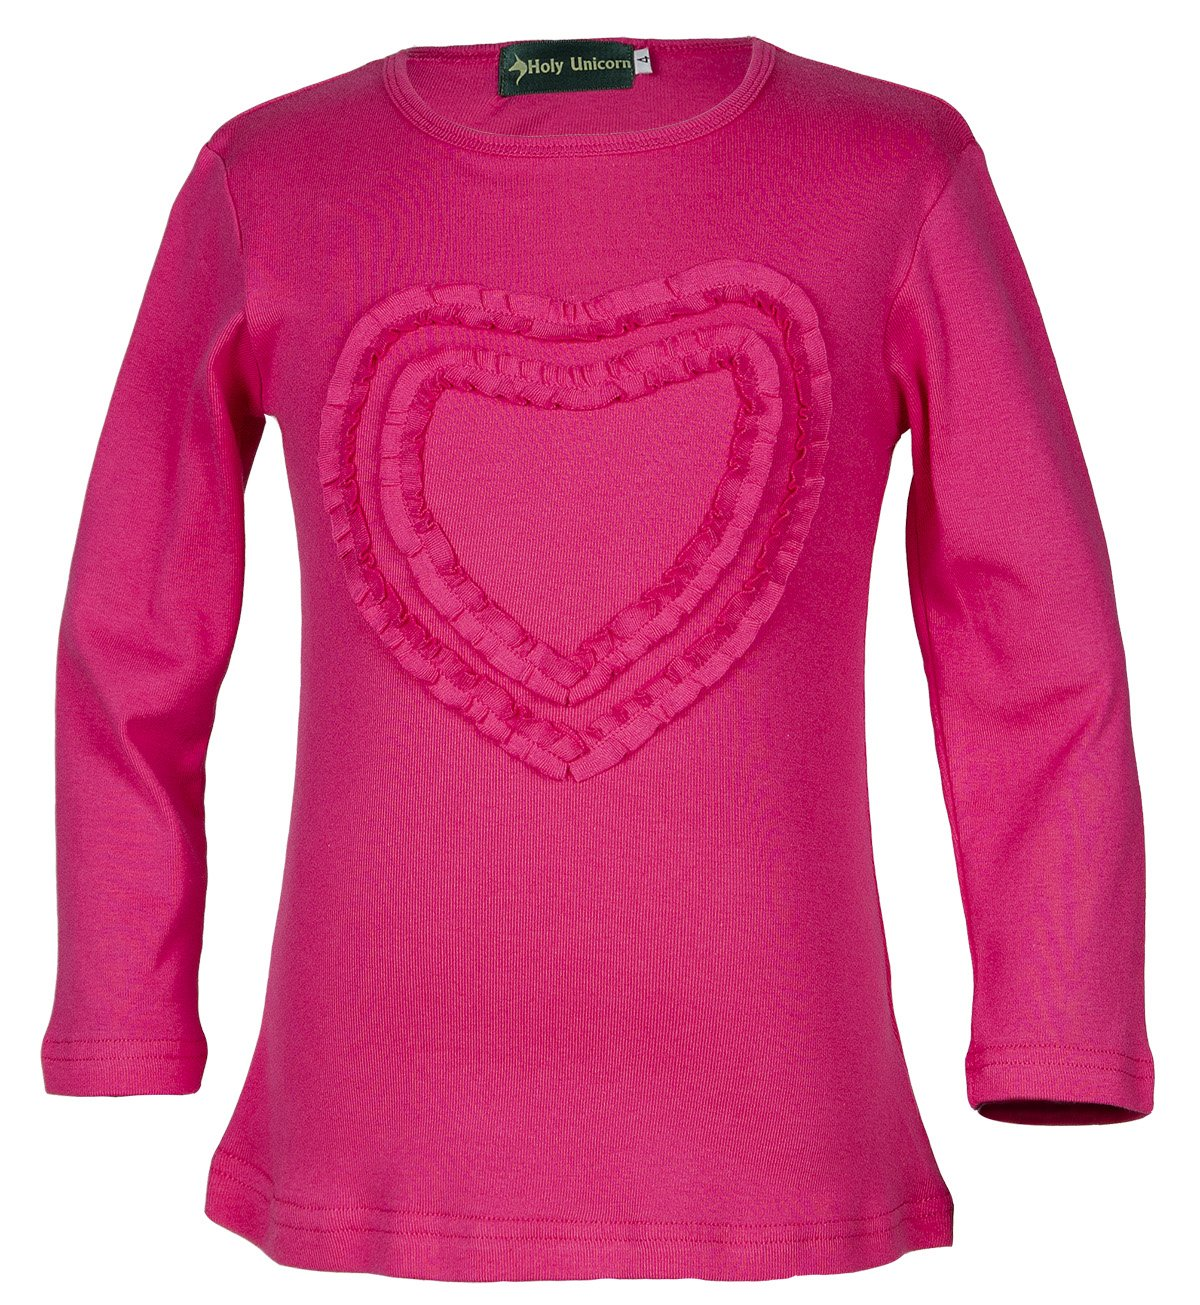 Girls' Ruffled Love Heart Long Sleeve Crew Neck Tee Shirt Top Amaranth 8